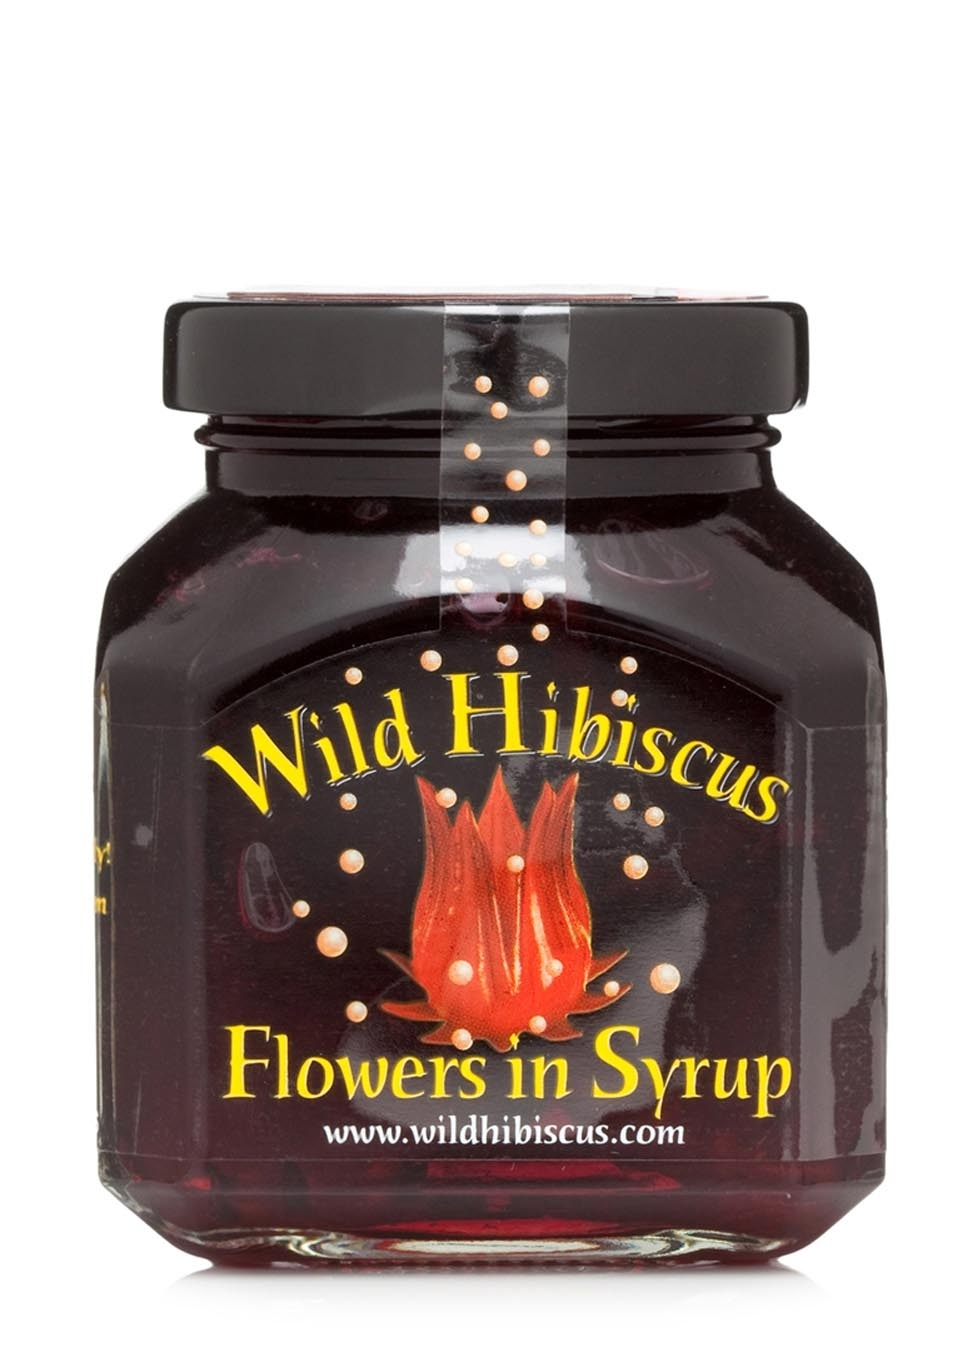 Wild hibiscus hibiscus flowers in syrup 250g harvey nichols izmirmasajfo Image collections